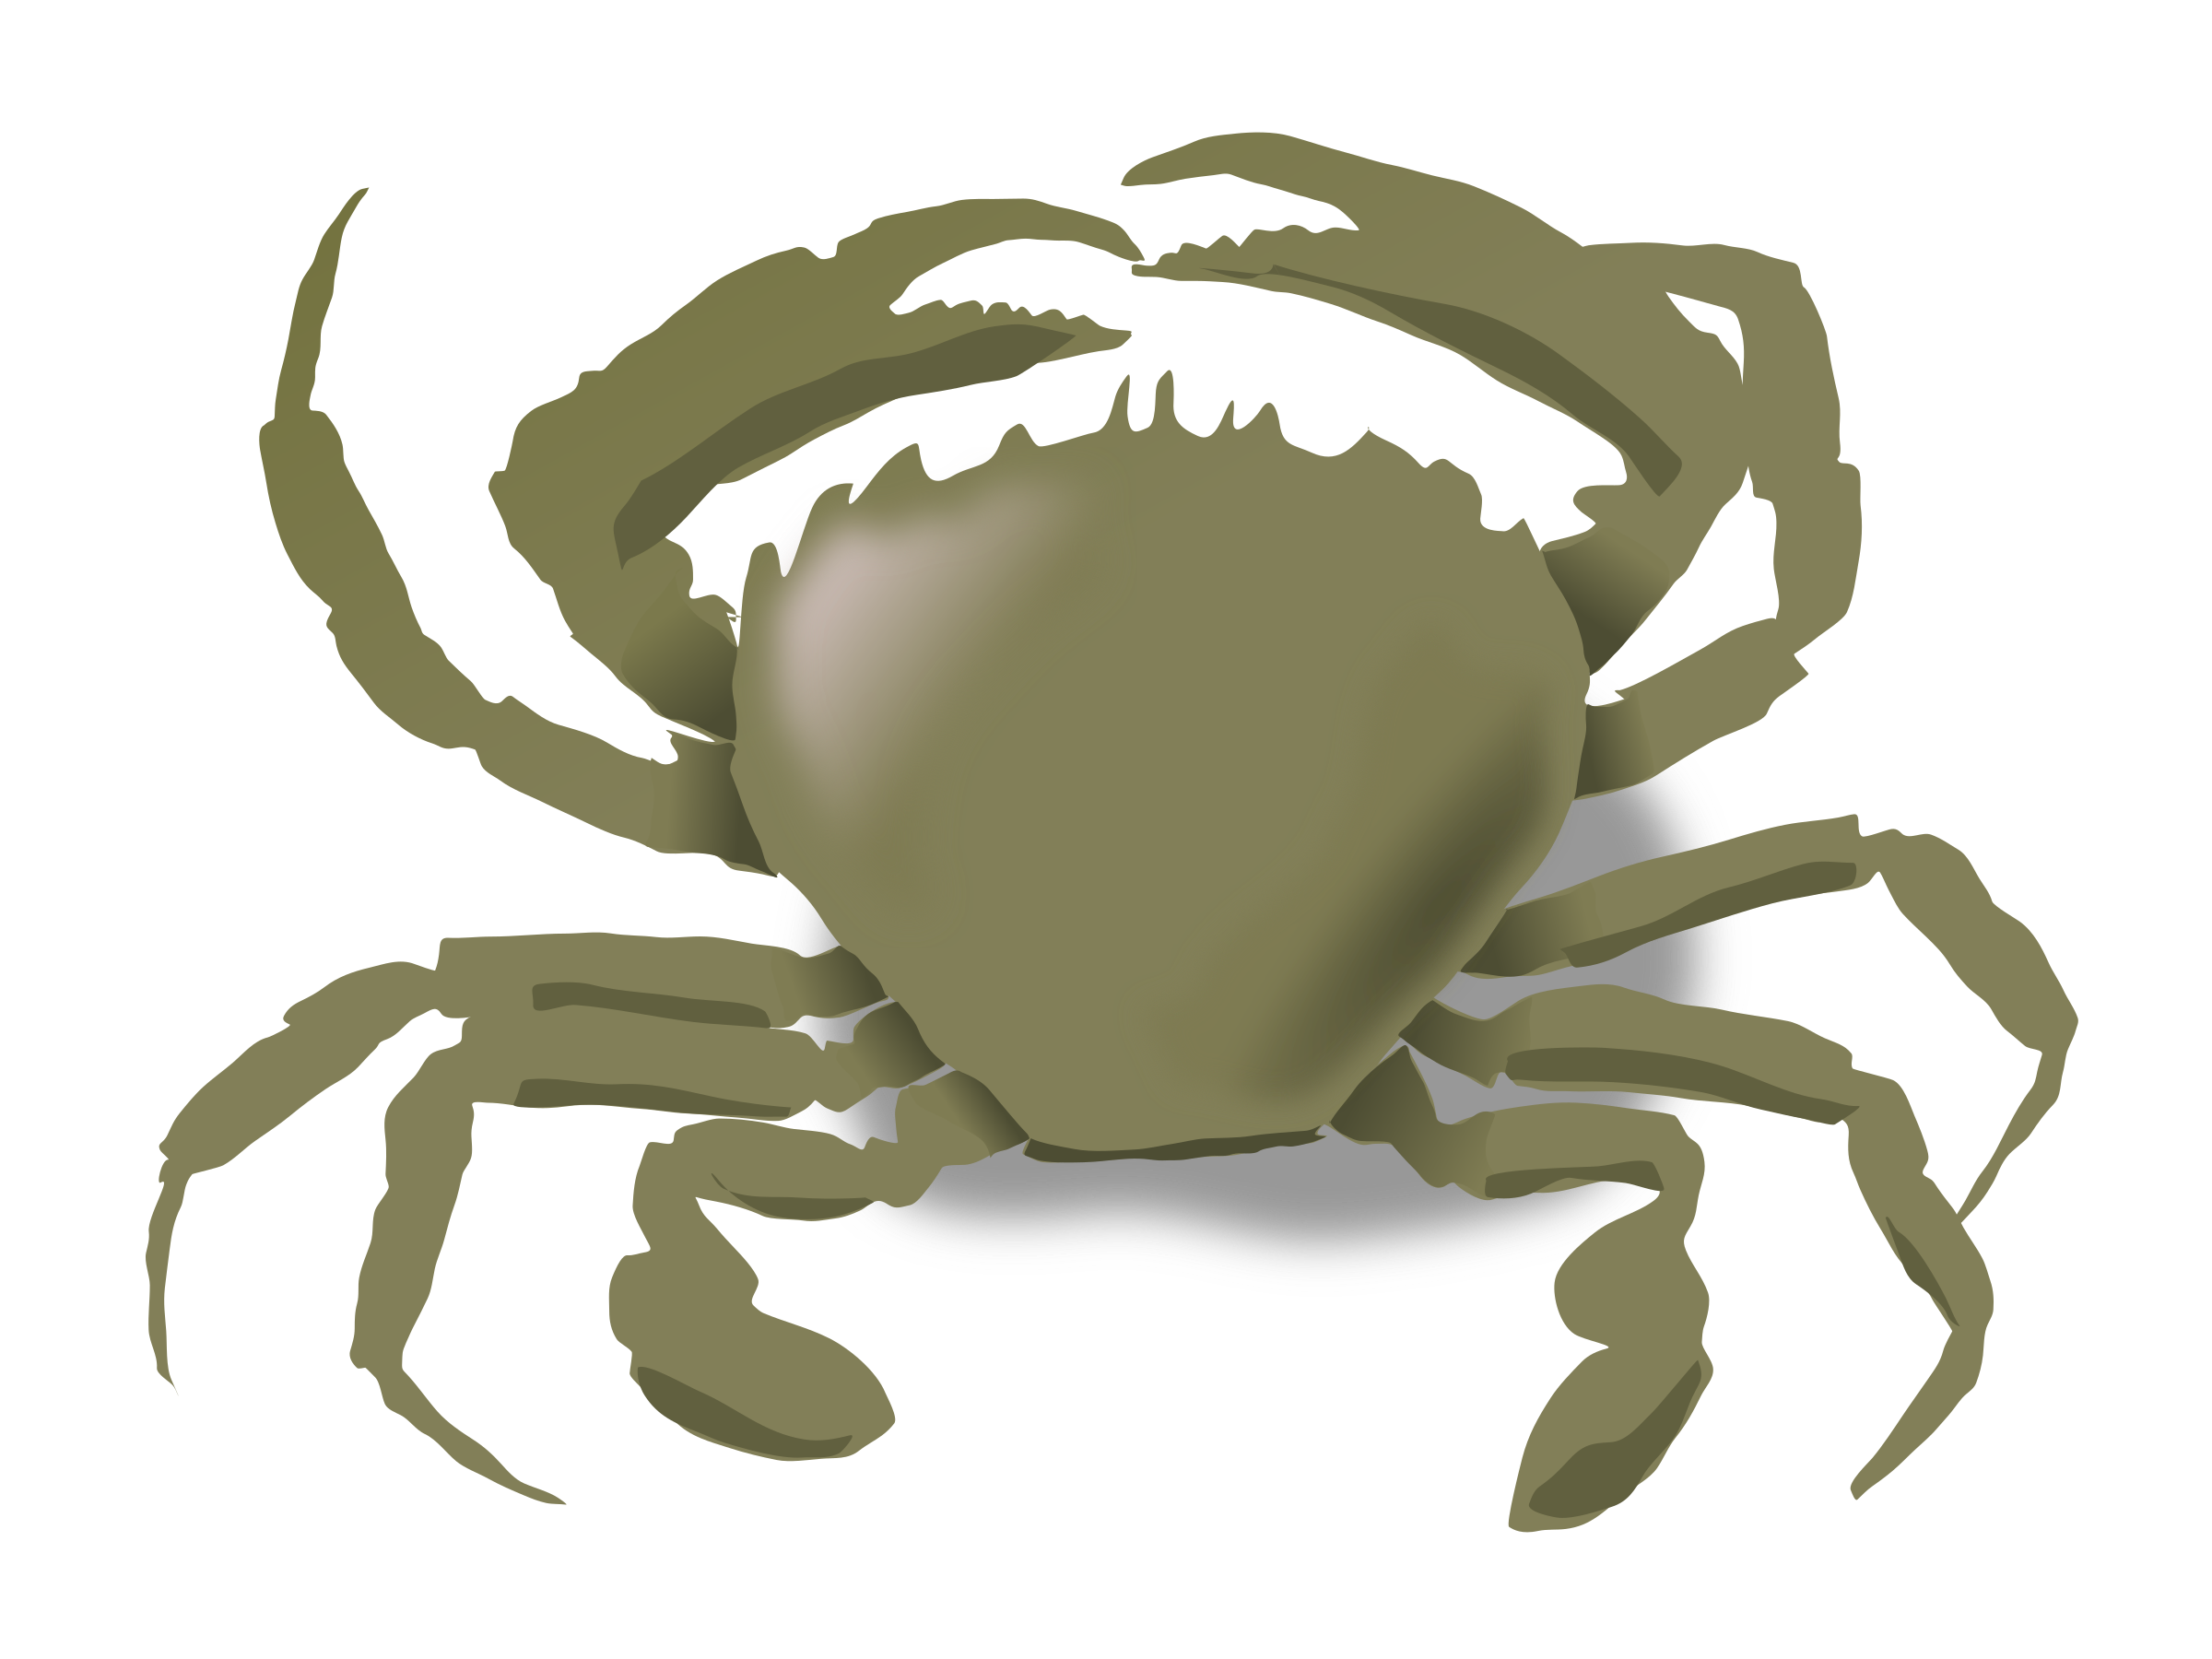 Water frames illustrations hd. Crabs clipart chilli crab